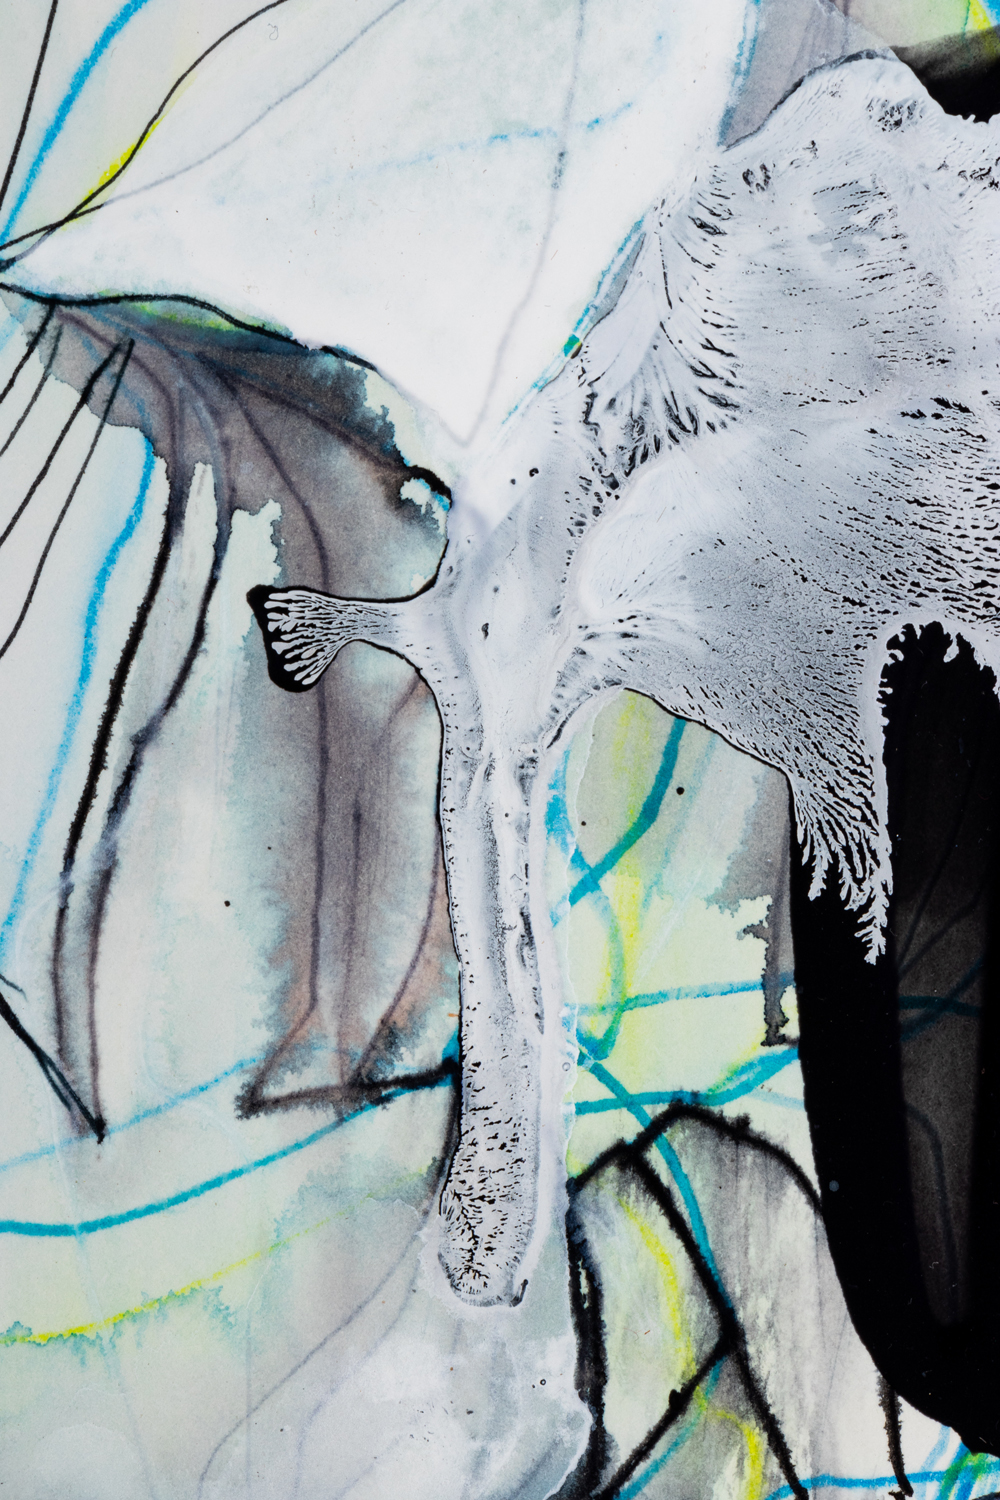 You Are a Raindrop 3, detail 2018 Ink and acrylic on paper 10 by 12 inches